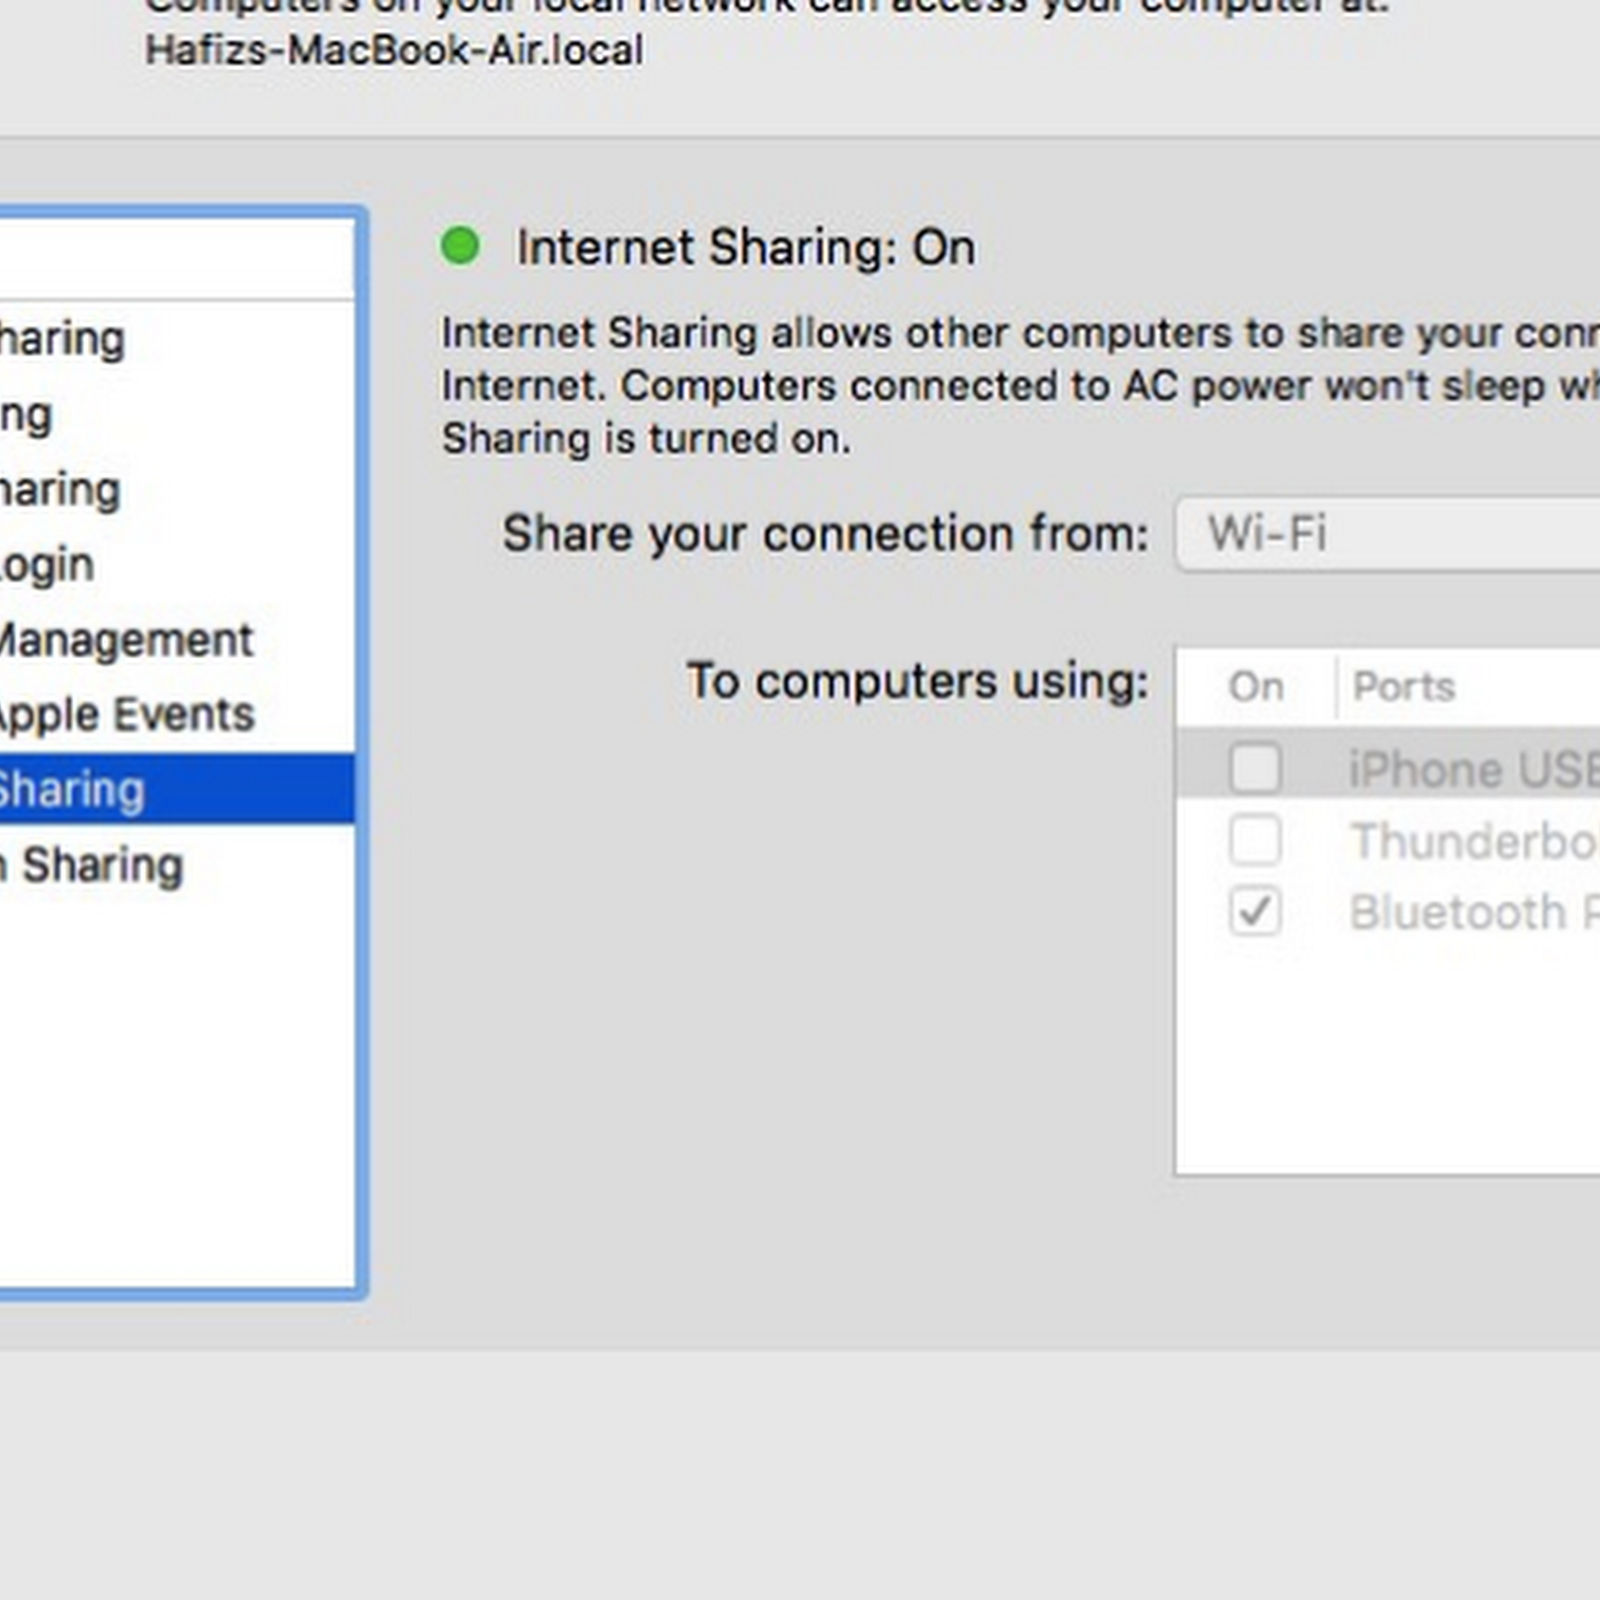 How to create hotspot on your mac book and share your wifi via bluetooh PAN.